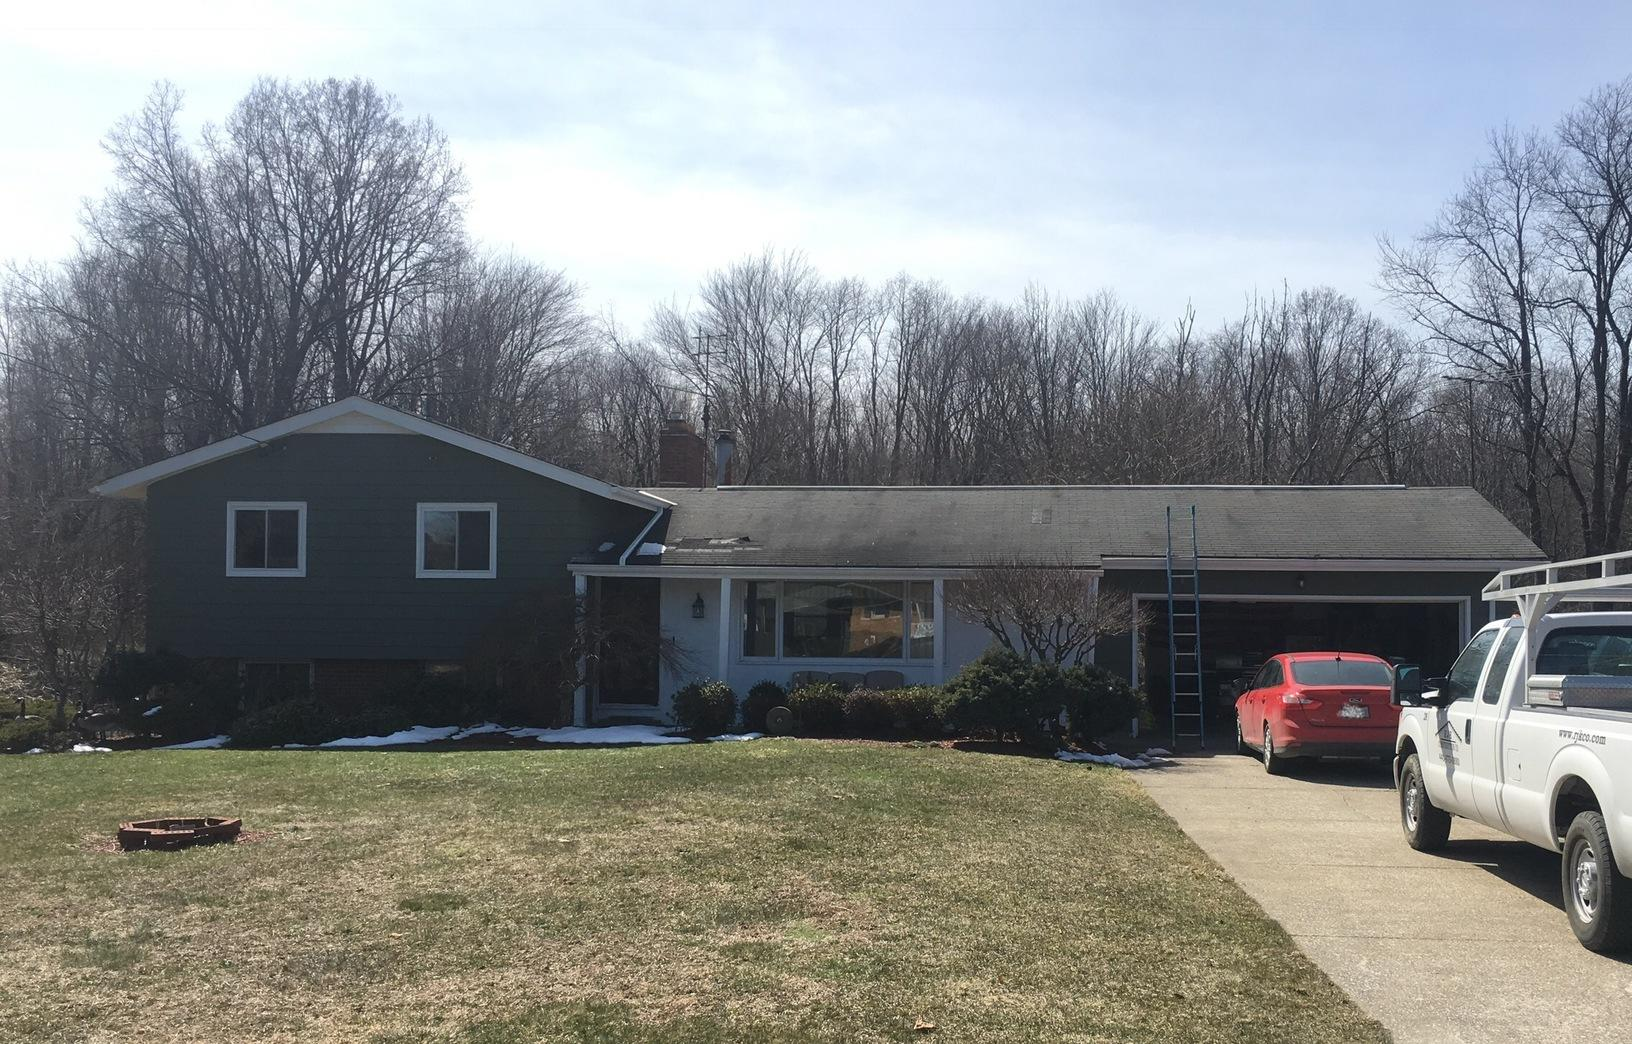 Roof Replacement In Perry Ohio - Before Photo